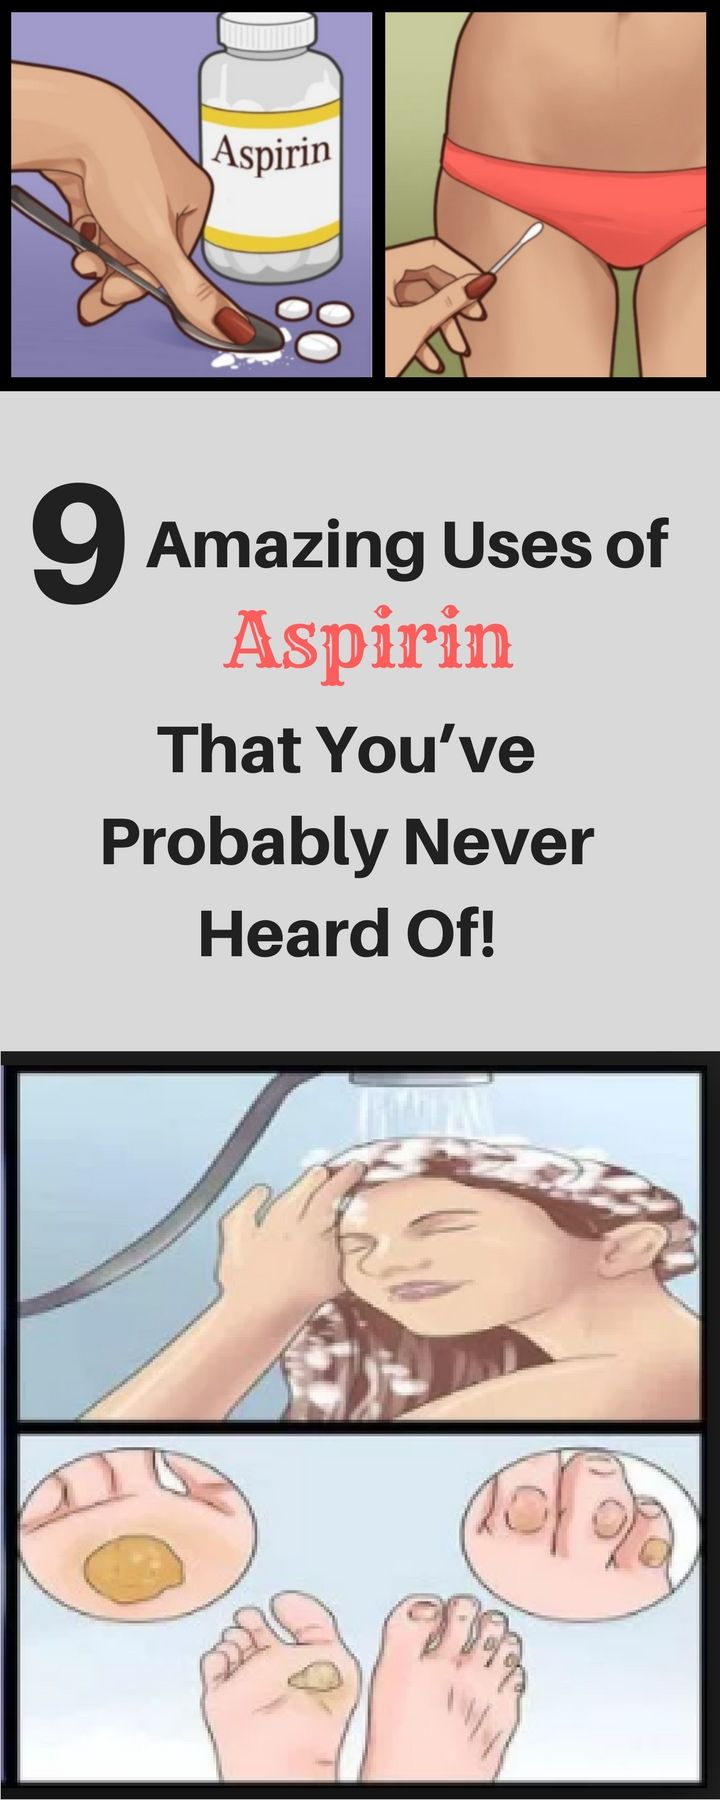 9 Amazing Uses Of Aspirin That You've Probably Never Heard Of!